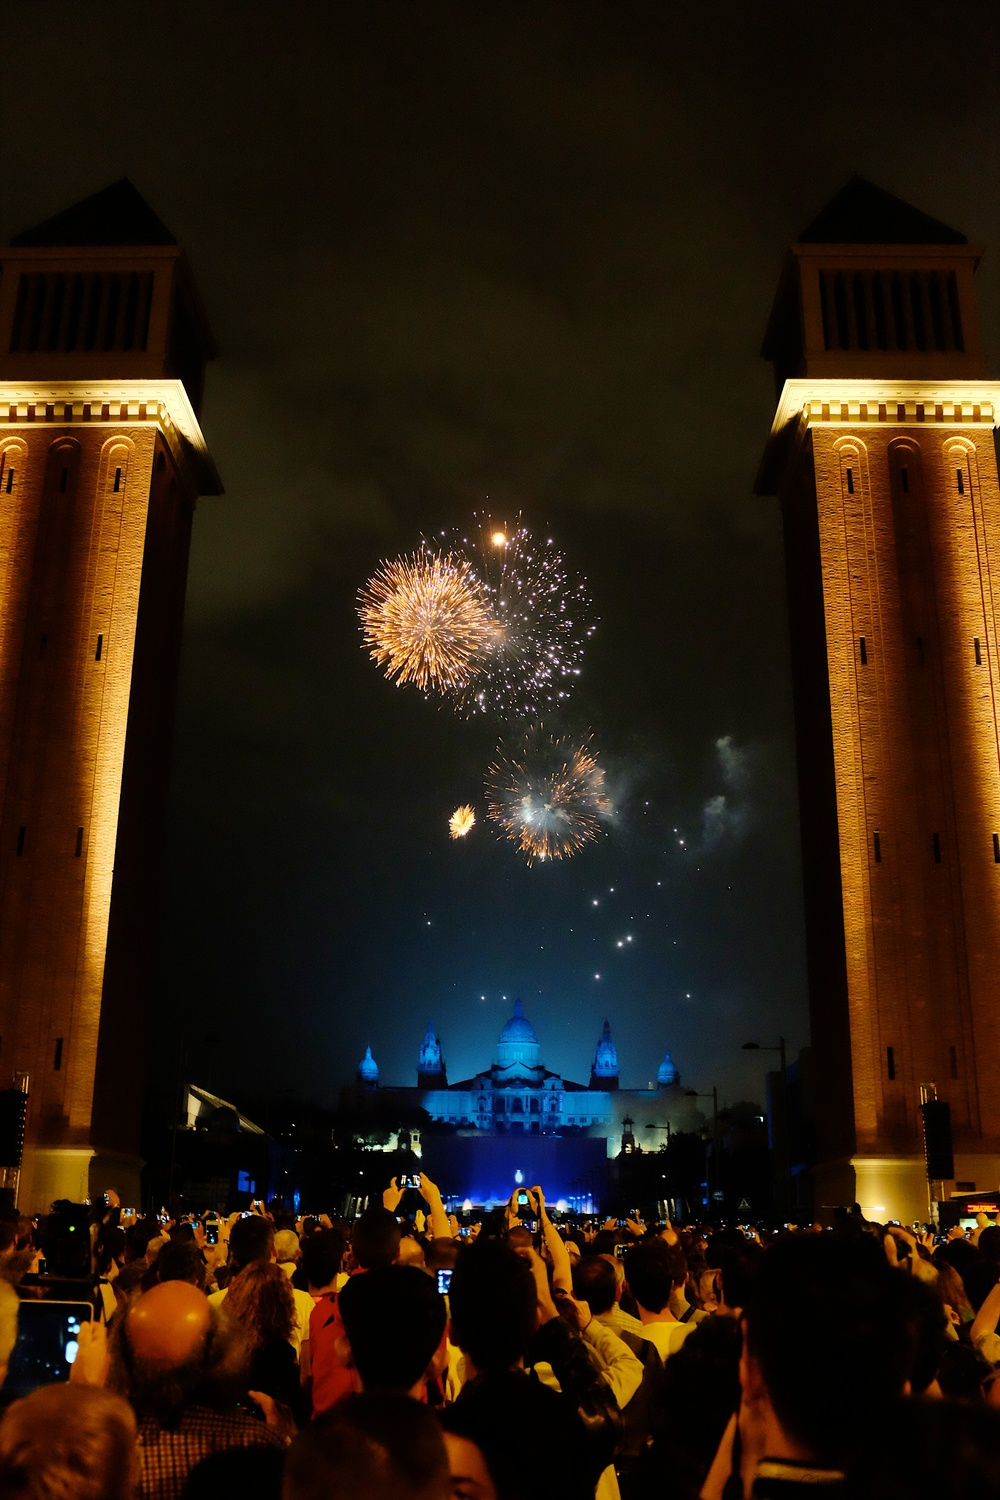 La Merce 2014 Fireworks